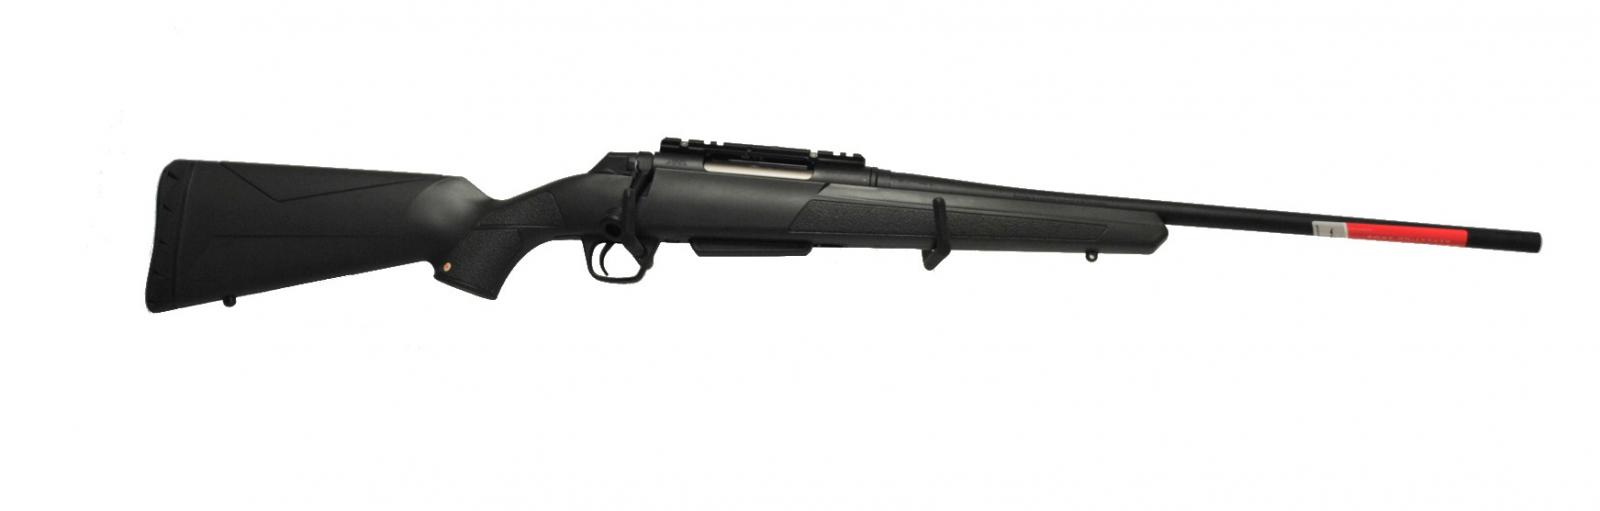 Carabine WINCHESTER XPR STEALTH Cal 30-06